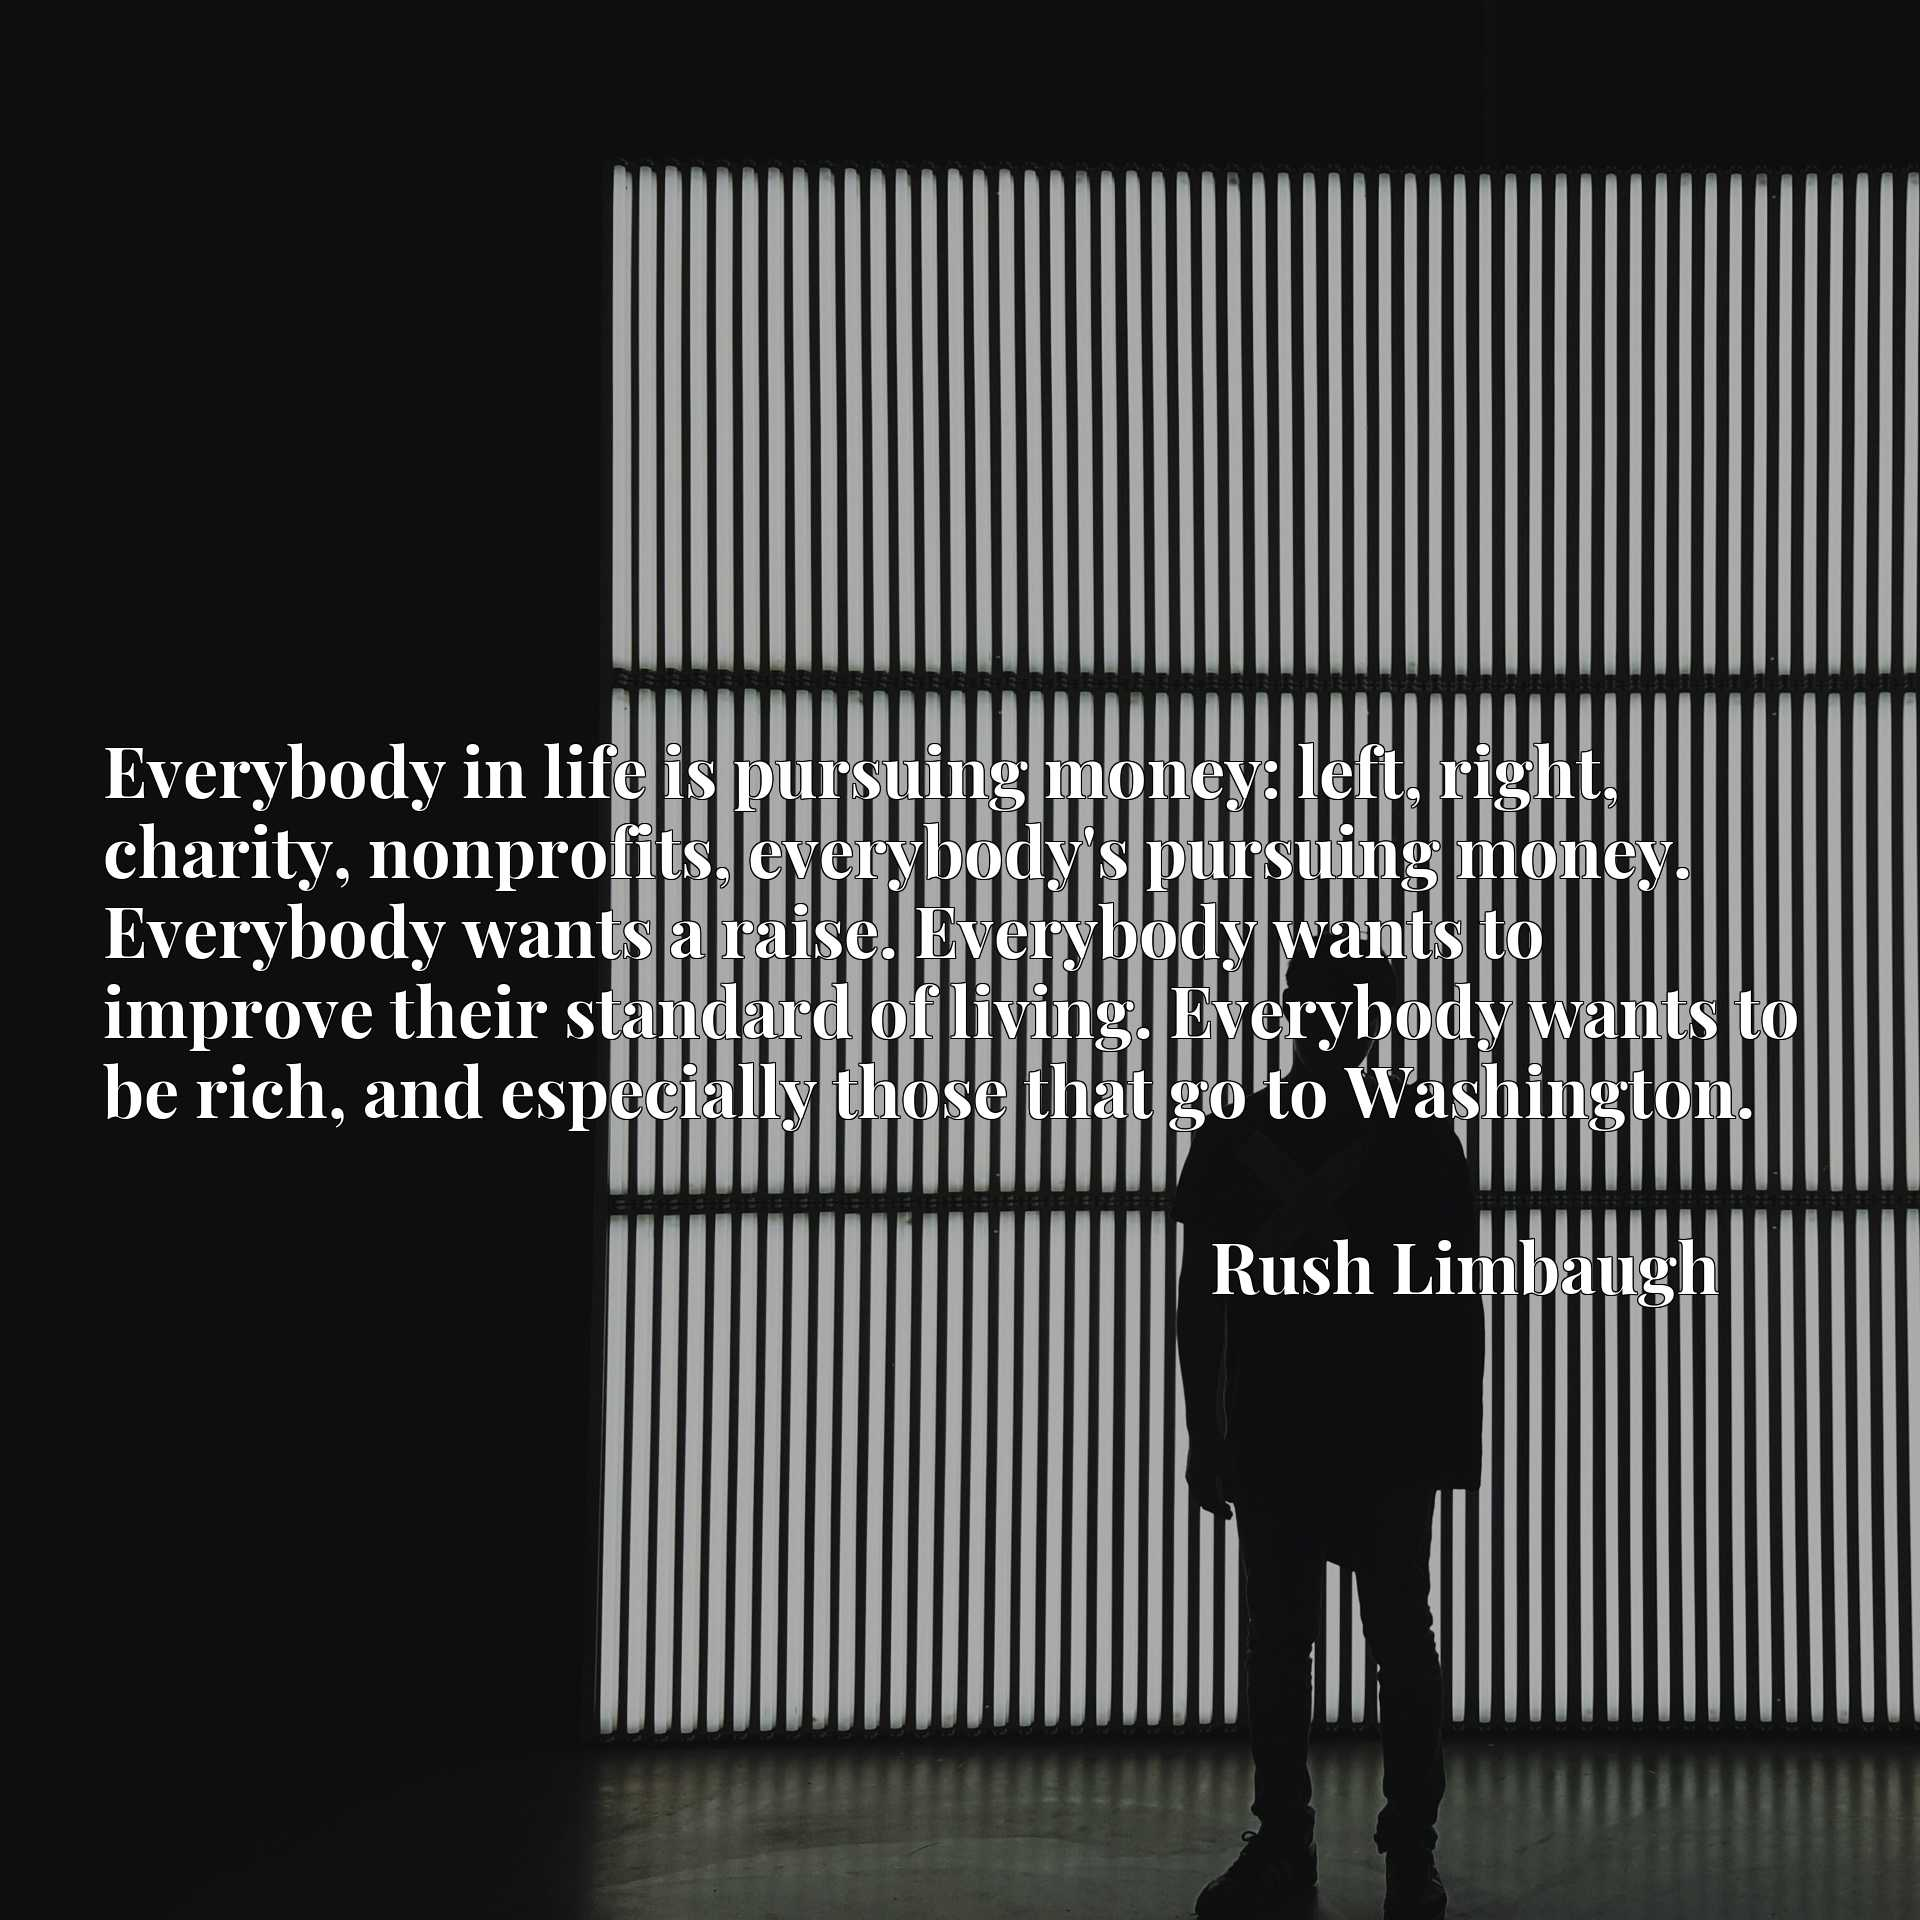 Everybody in life is pursuing money: left, right, charity, nonprofits, everybody's pursuing money. Everybody wants a raise. Everybody wants to improve their standard of living. Everybody wants to be rich, and especially those that go to Washington.